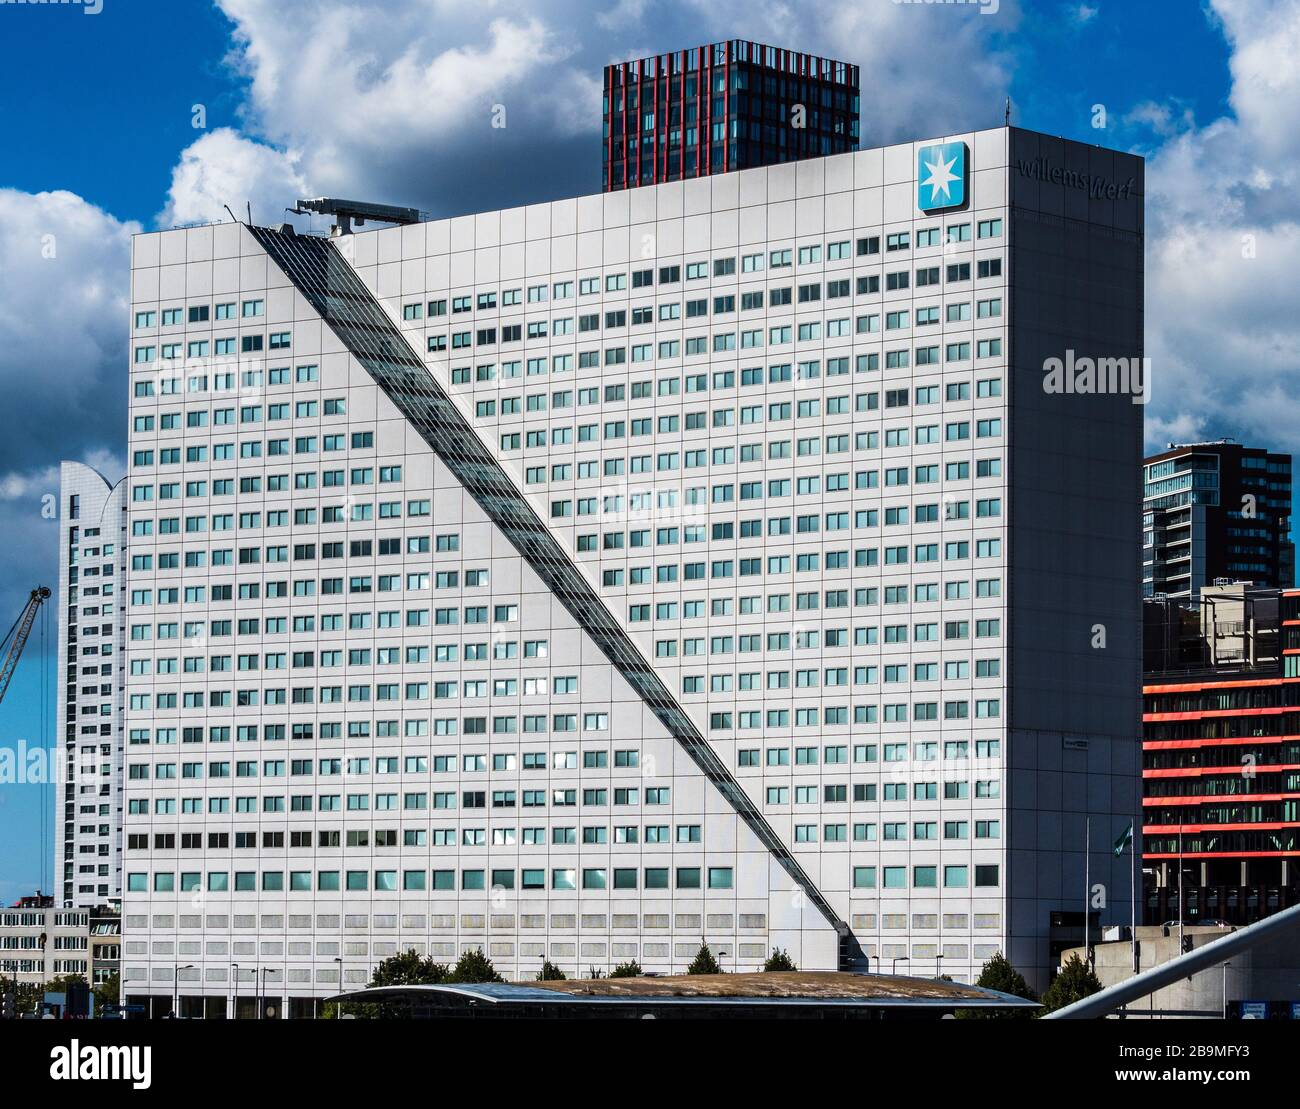 A.P. Møller – Mærsk A/S Willemswerf Rotterdam.  Office Building currently housing the Dutch HQ of Maersk. Completed 1988, architect Wim Quist. Stock Photo